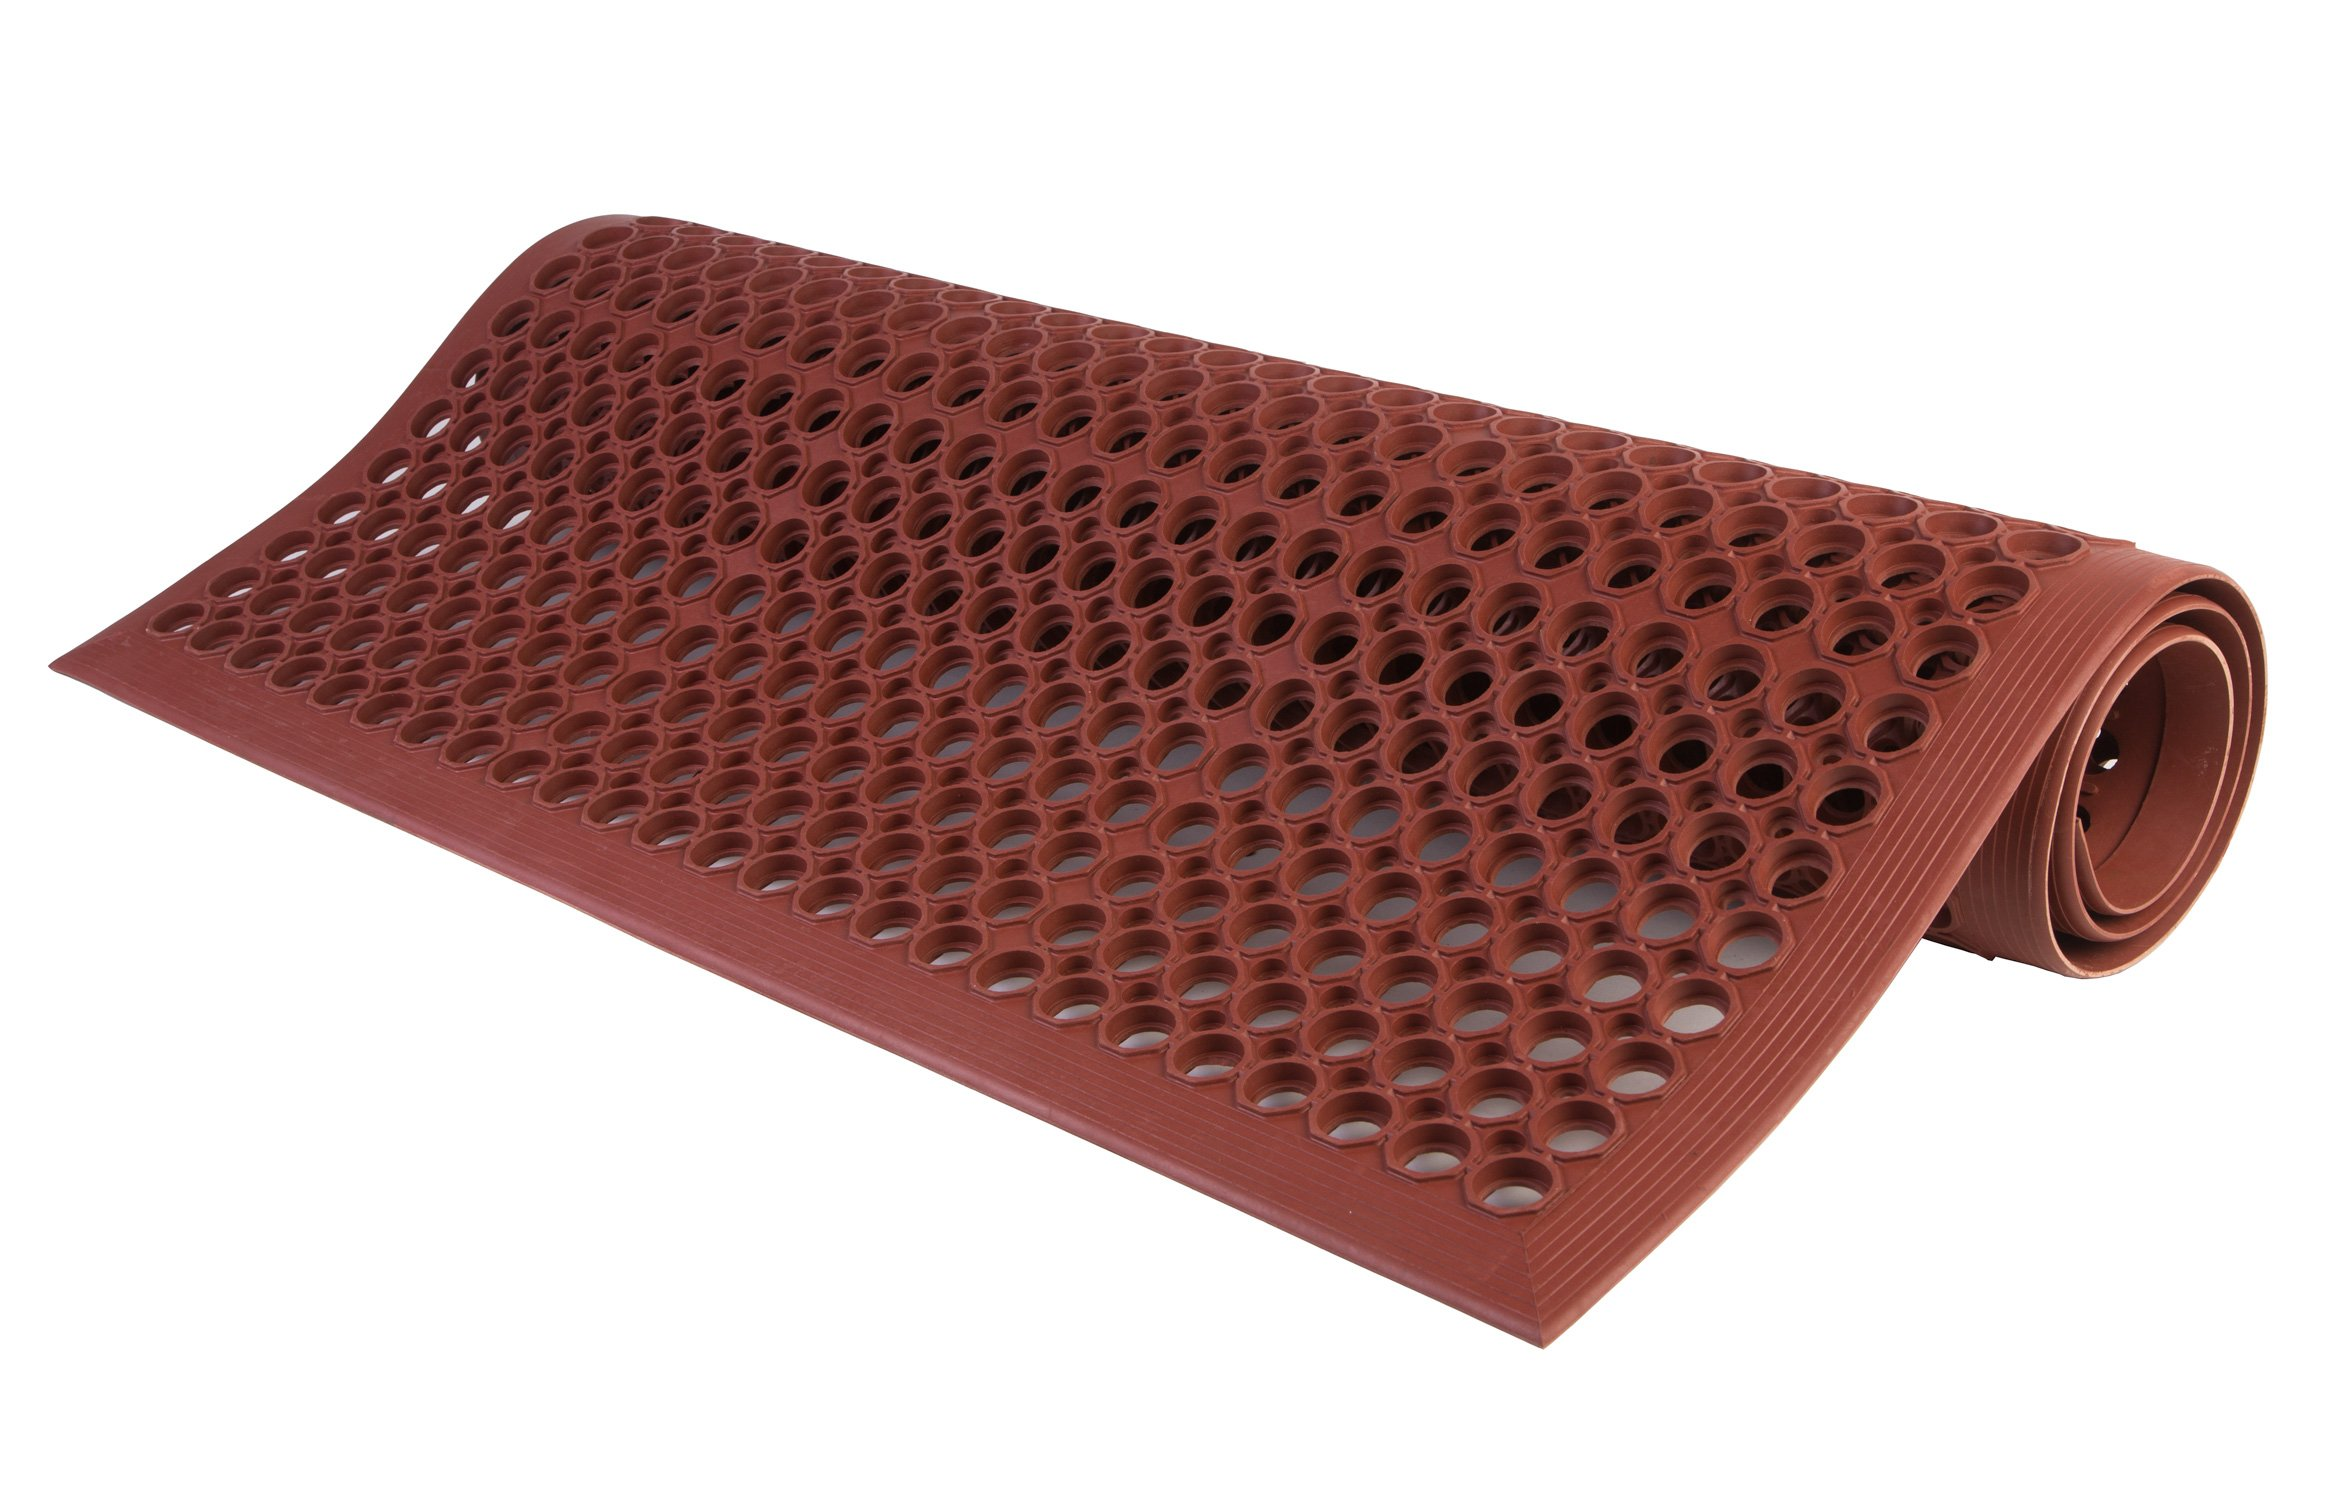 Consolidated Plastics Lightweight DEK-Mat, Anti-Fatigue Kitchen Mat with Holes, 3'x5', Grease Resistant Red